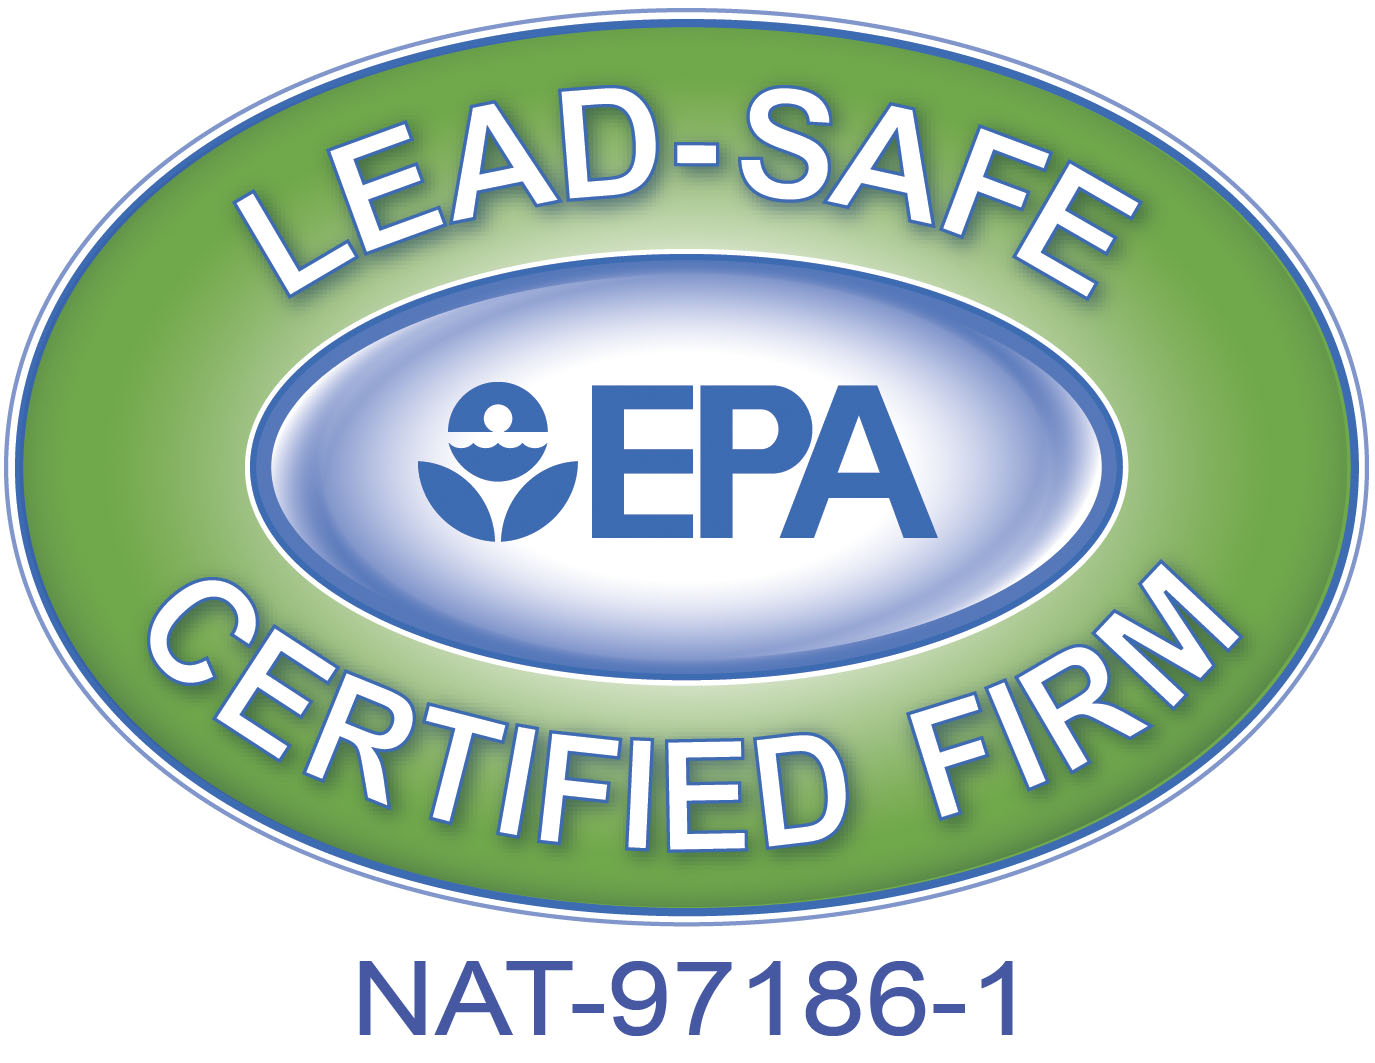 Find out about EPA Lead-Safe Certification